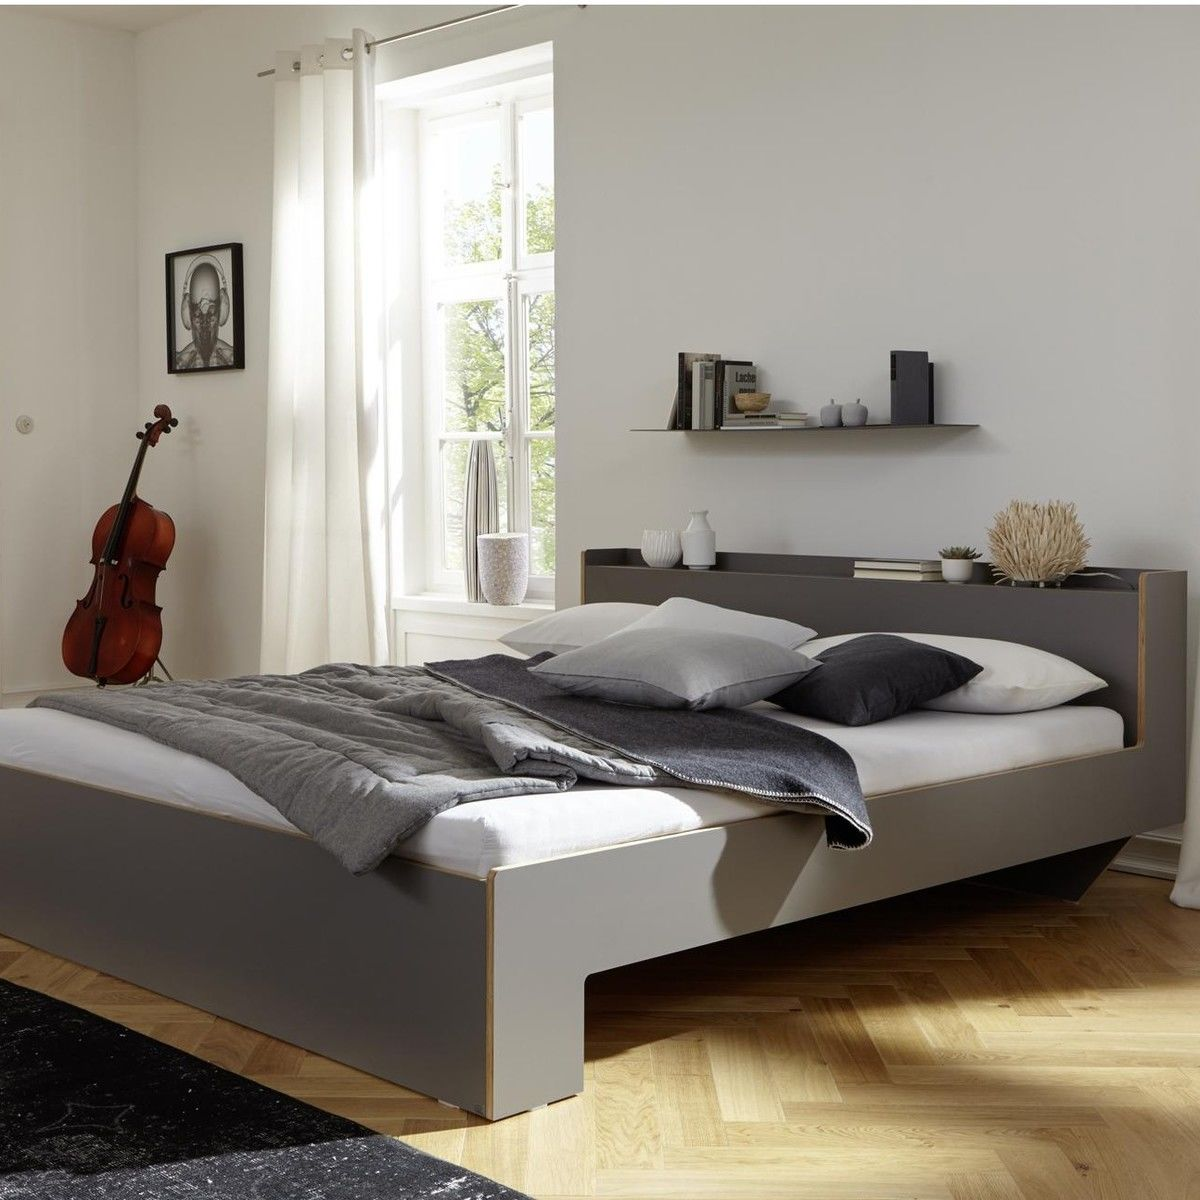 nook doppelbett m ller m belwerkst tten betten m bel. Black Bedroom Furniture Sets. Home Design Ideas